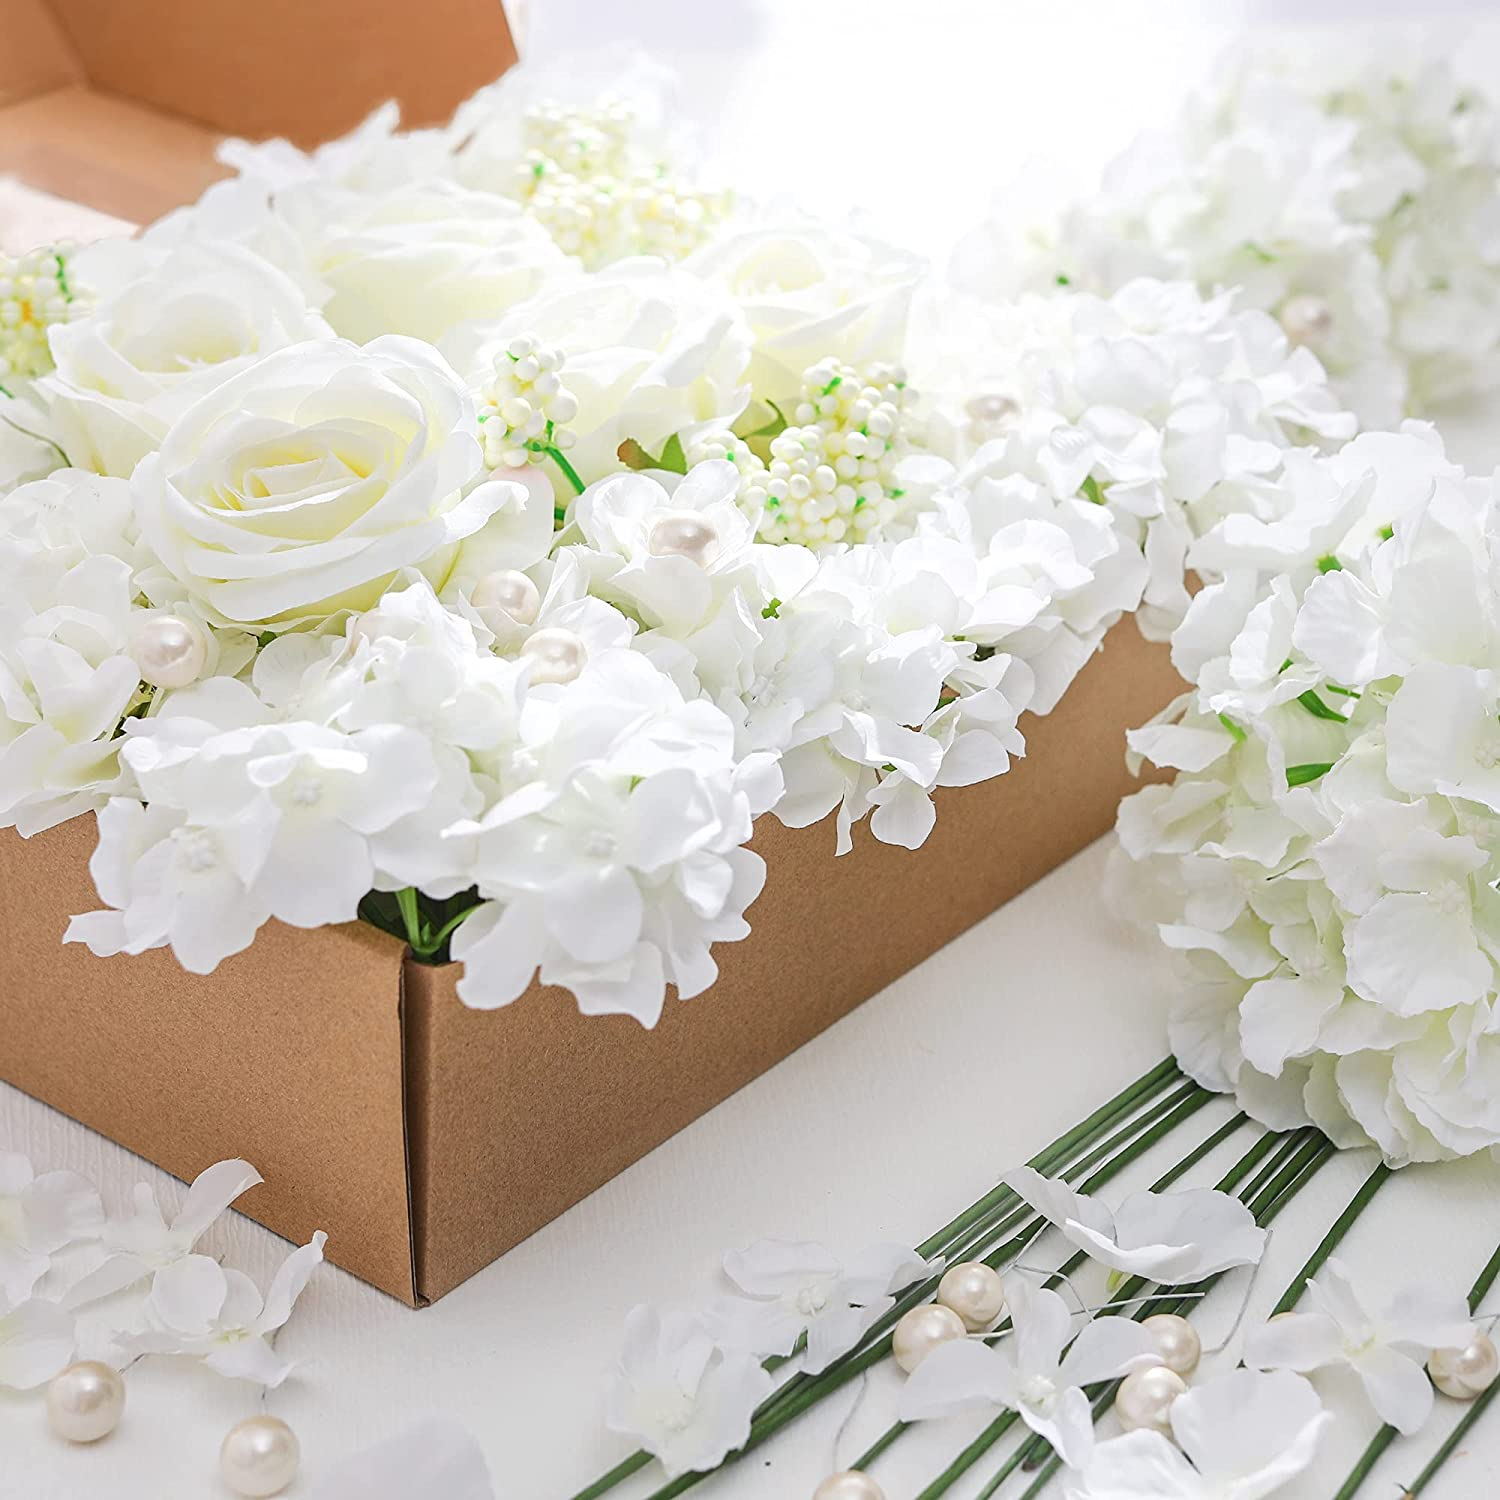 25Pcs Sale Special Price Anna's Whimsy Max 49% OFF Artificial Flowers Silk Combo Ros Hydrangea